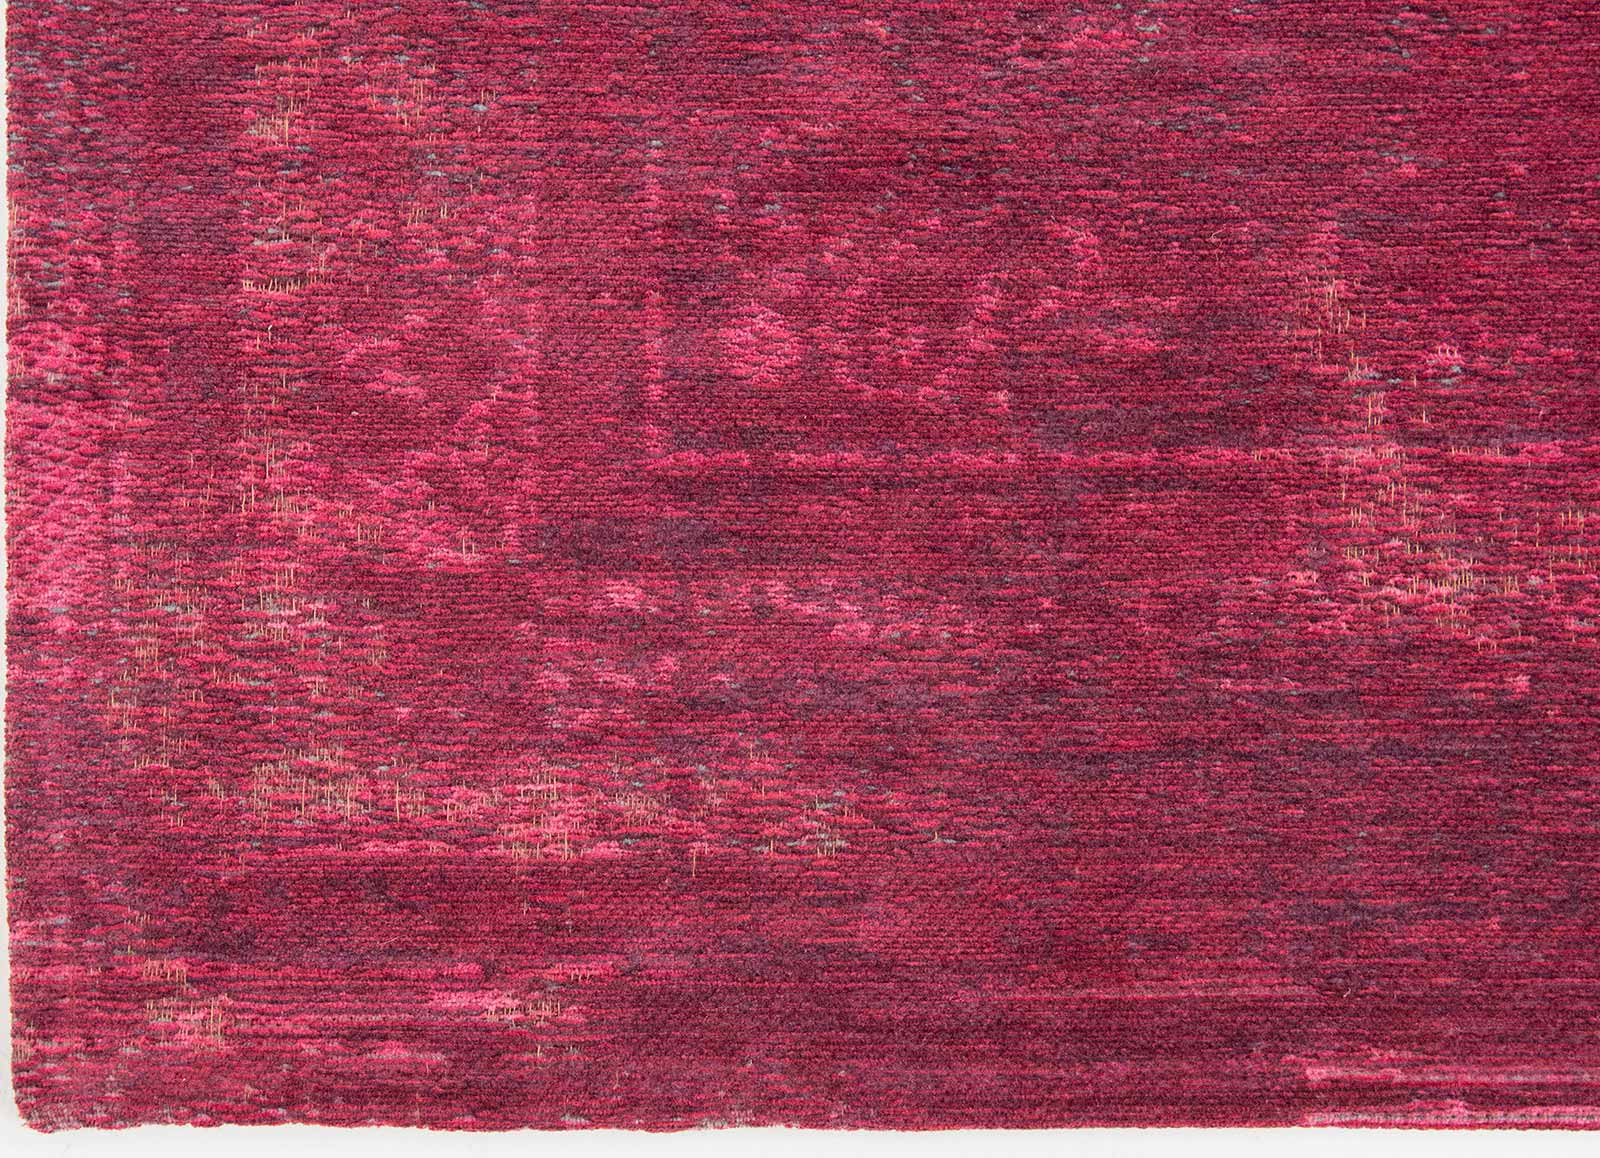 Teppich World Louis De Poortere Teppich Fading World Scarlet 8260